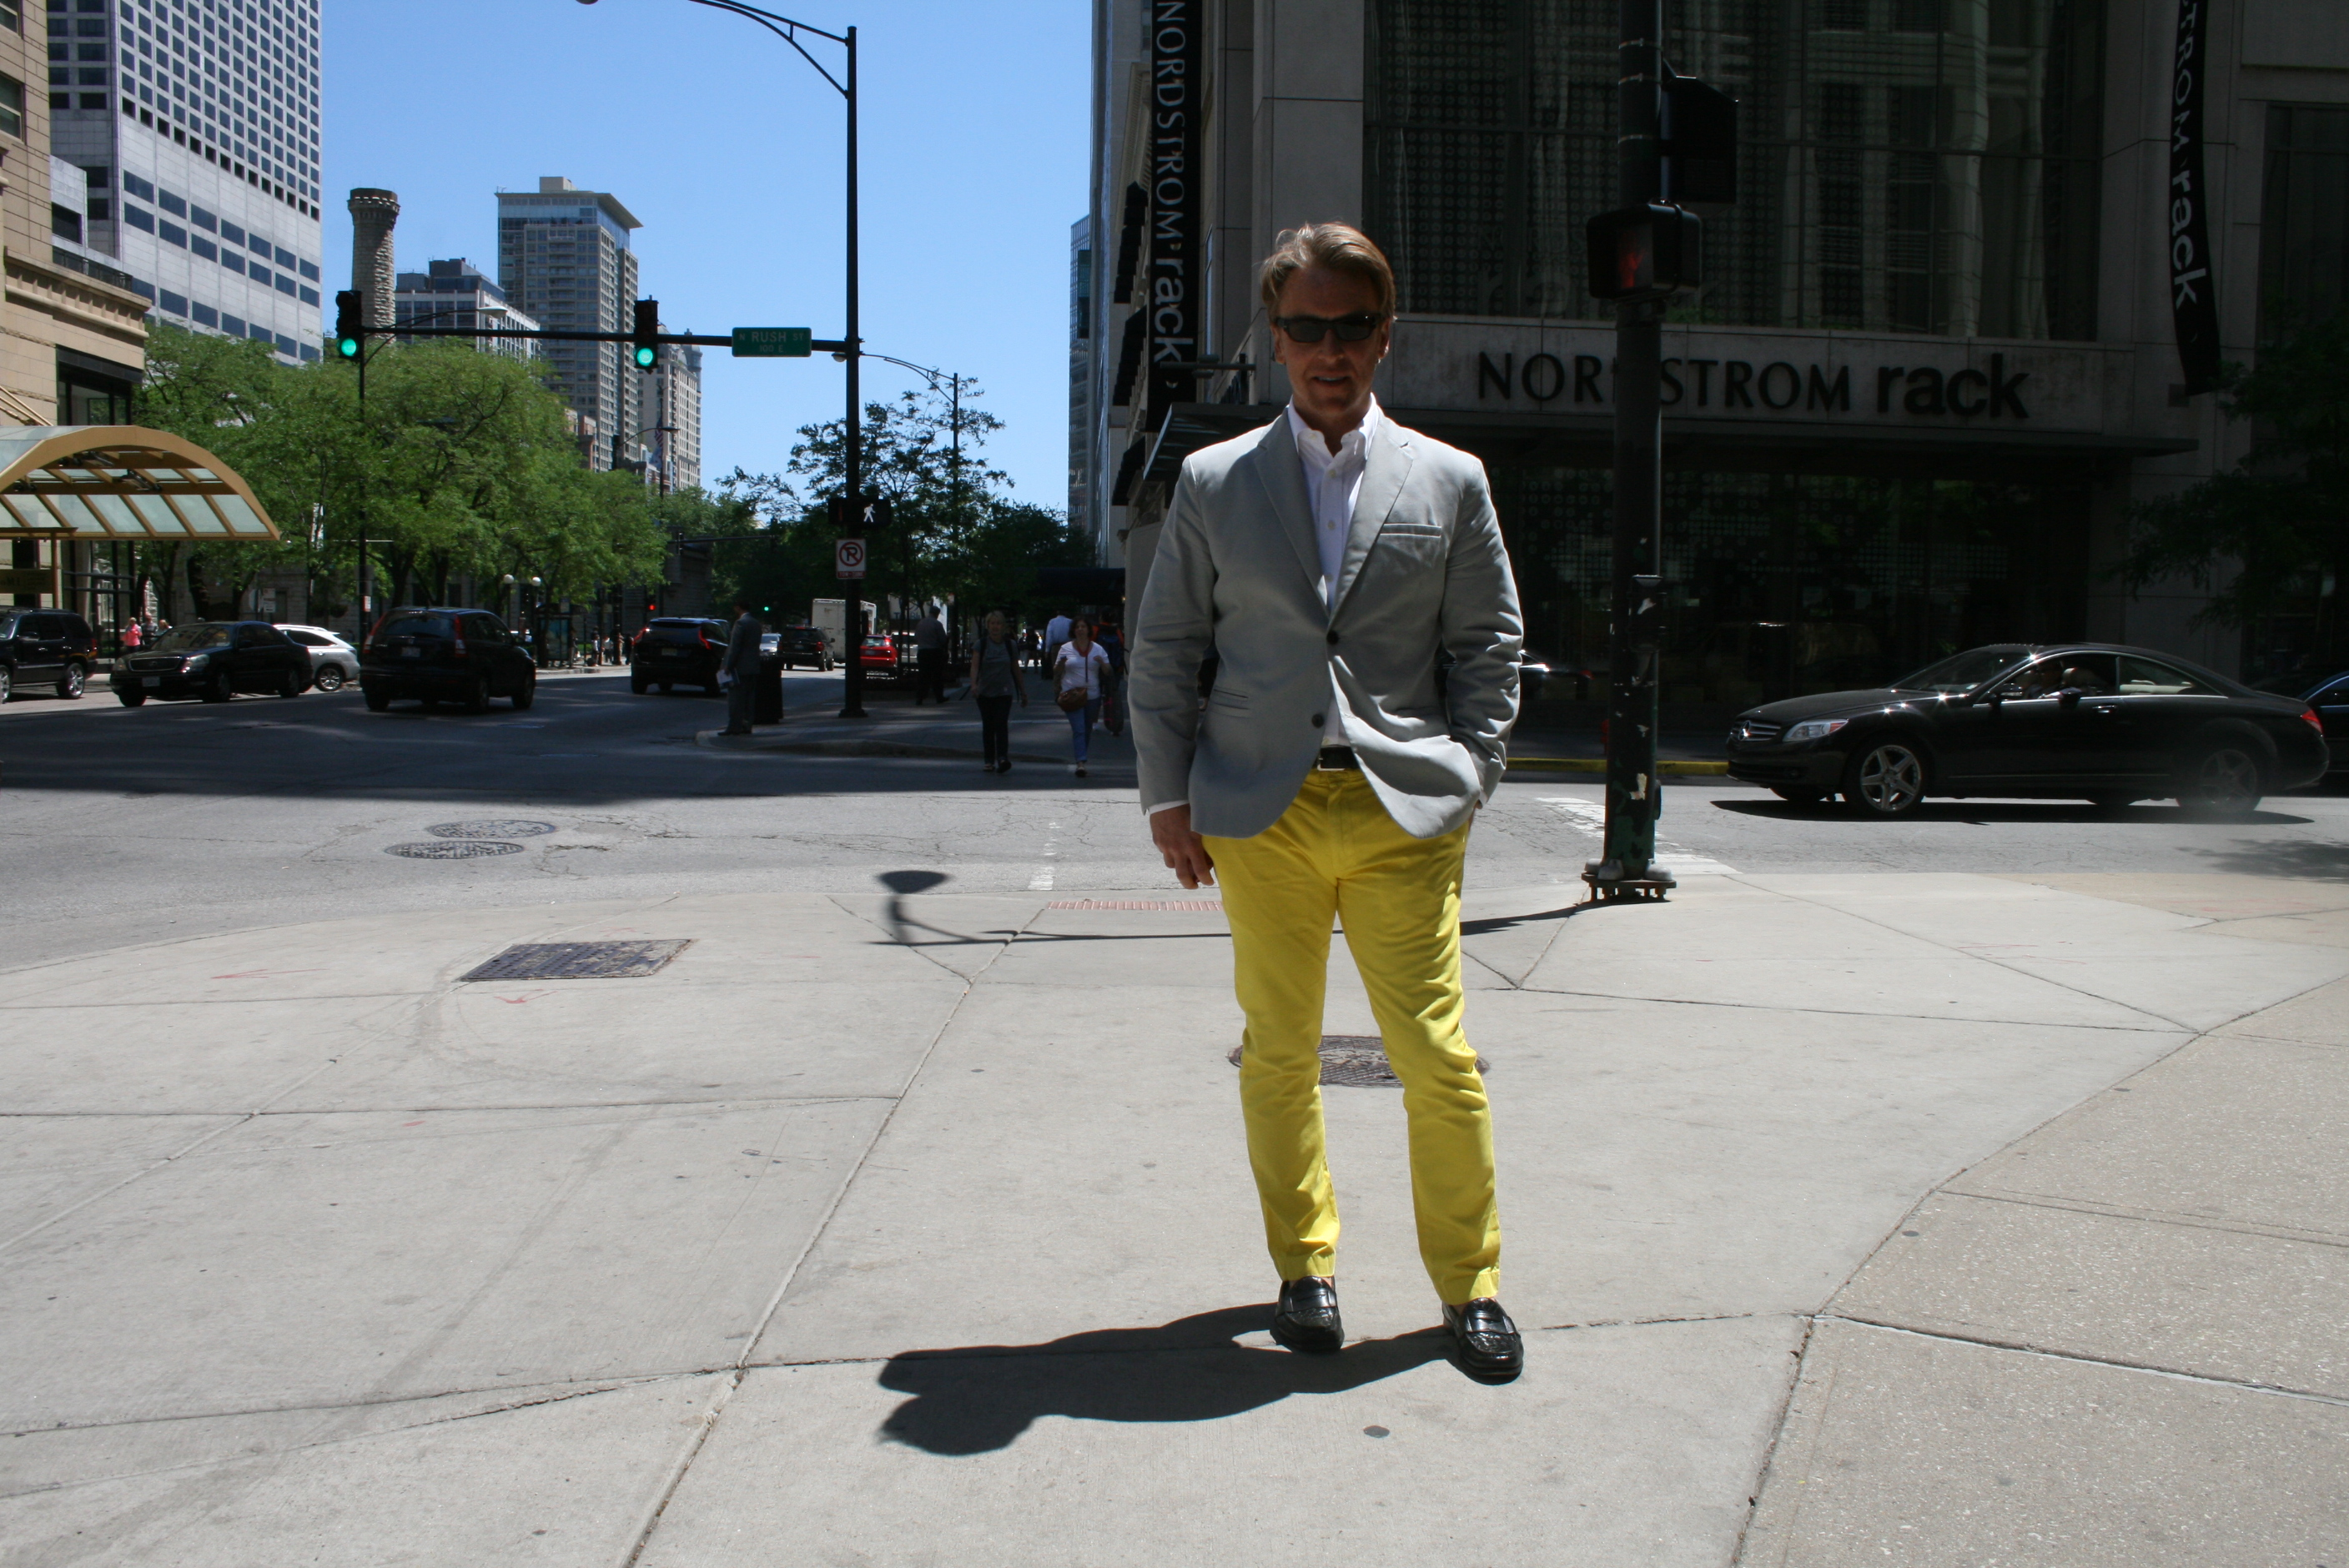 Mr. Andrew Shea is from the East Coast and enjoys dressing in European Bespoke outfits. He is currently wearing J Crew trousers and a Bespoke tailored men's suit